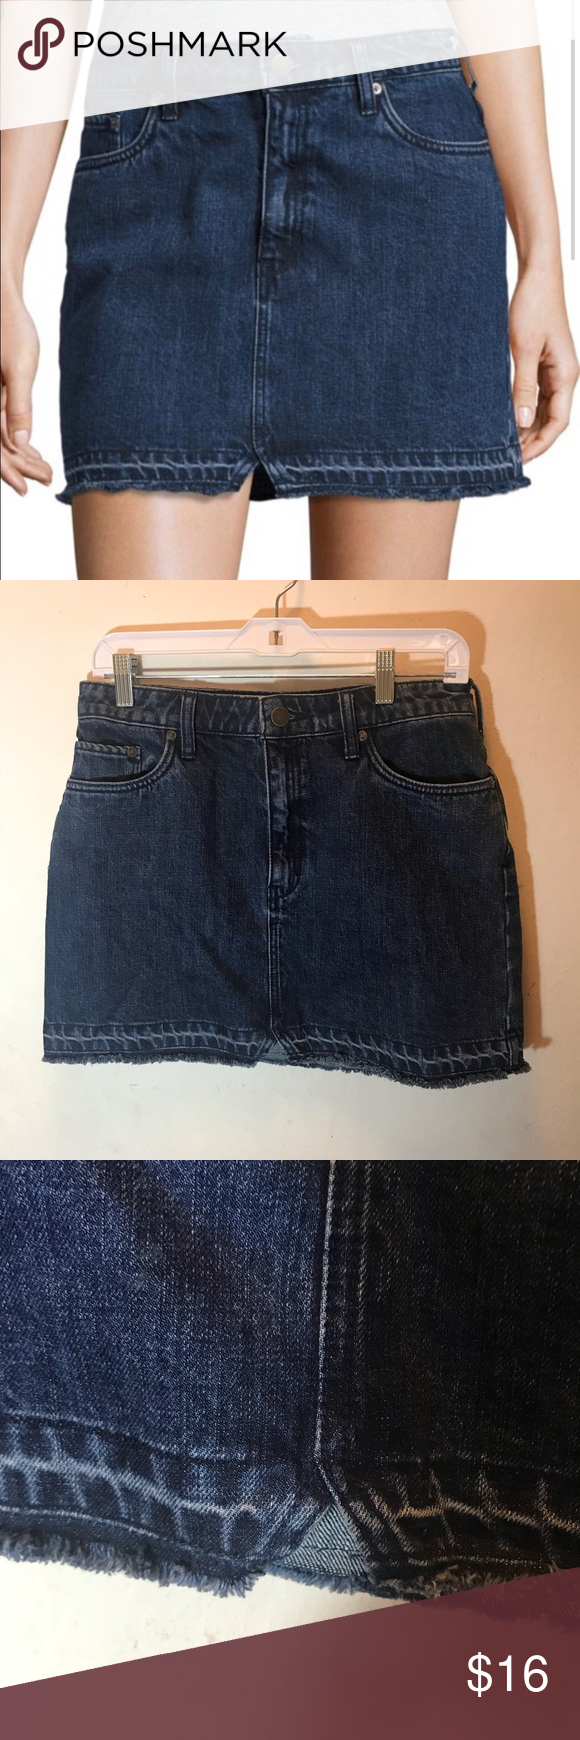 ef1d552c8c7ff Free People Step Up dark denim mini skirt Free People Step Up dark denim  mini skirt